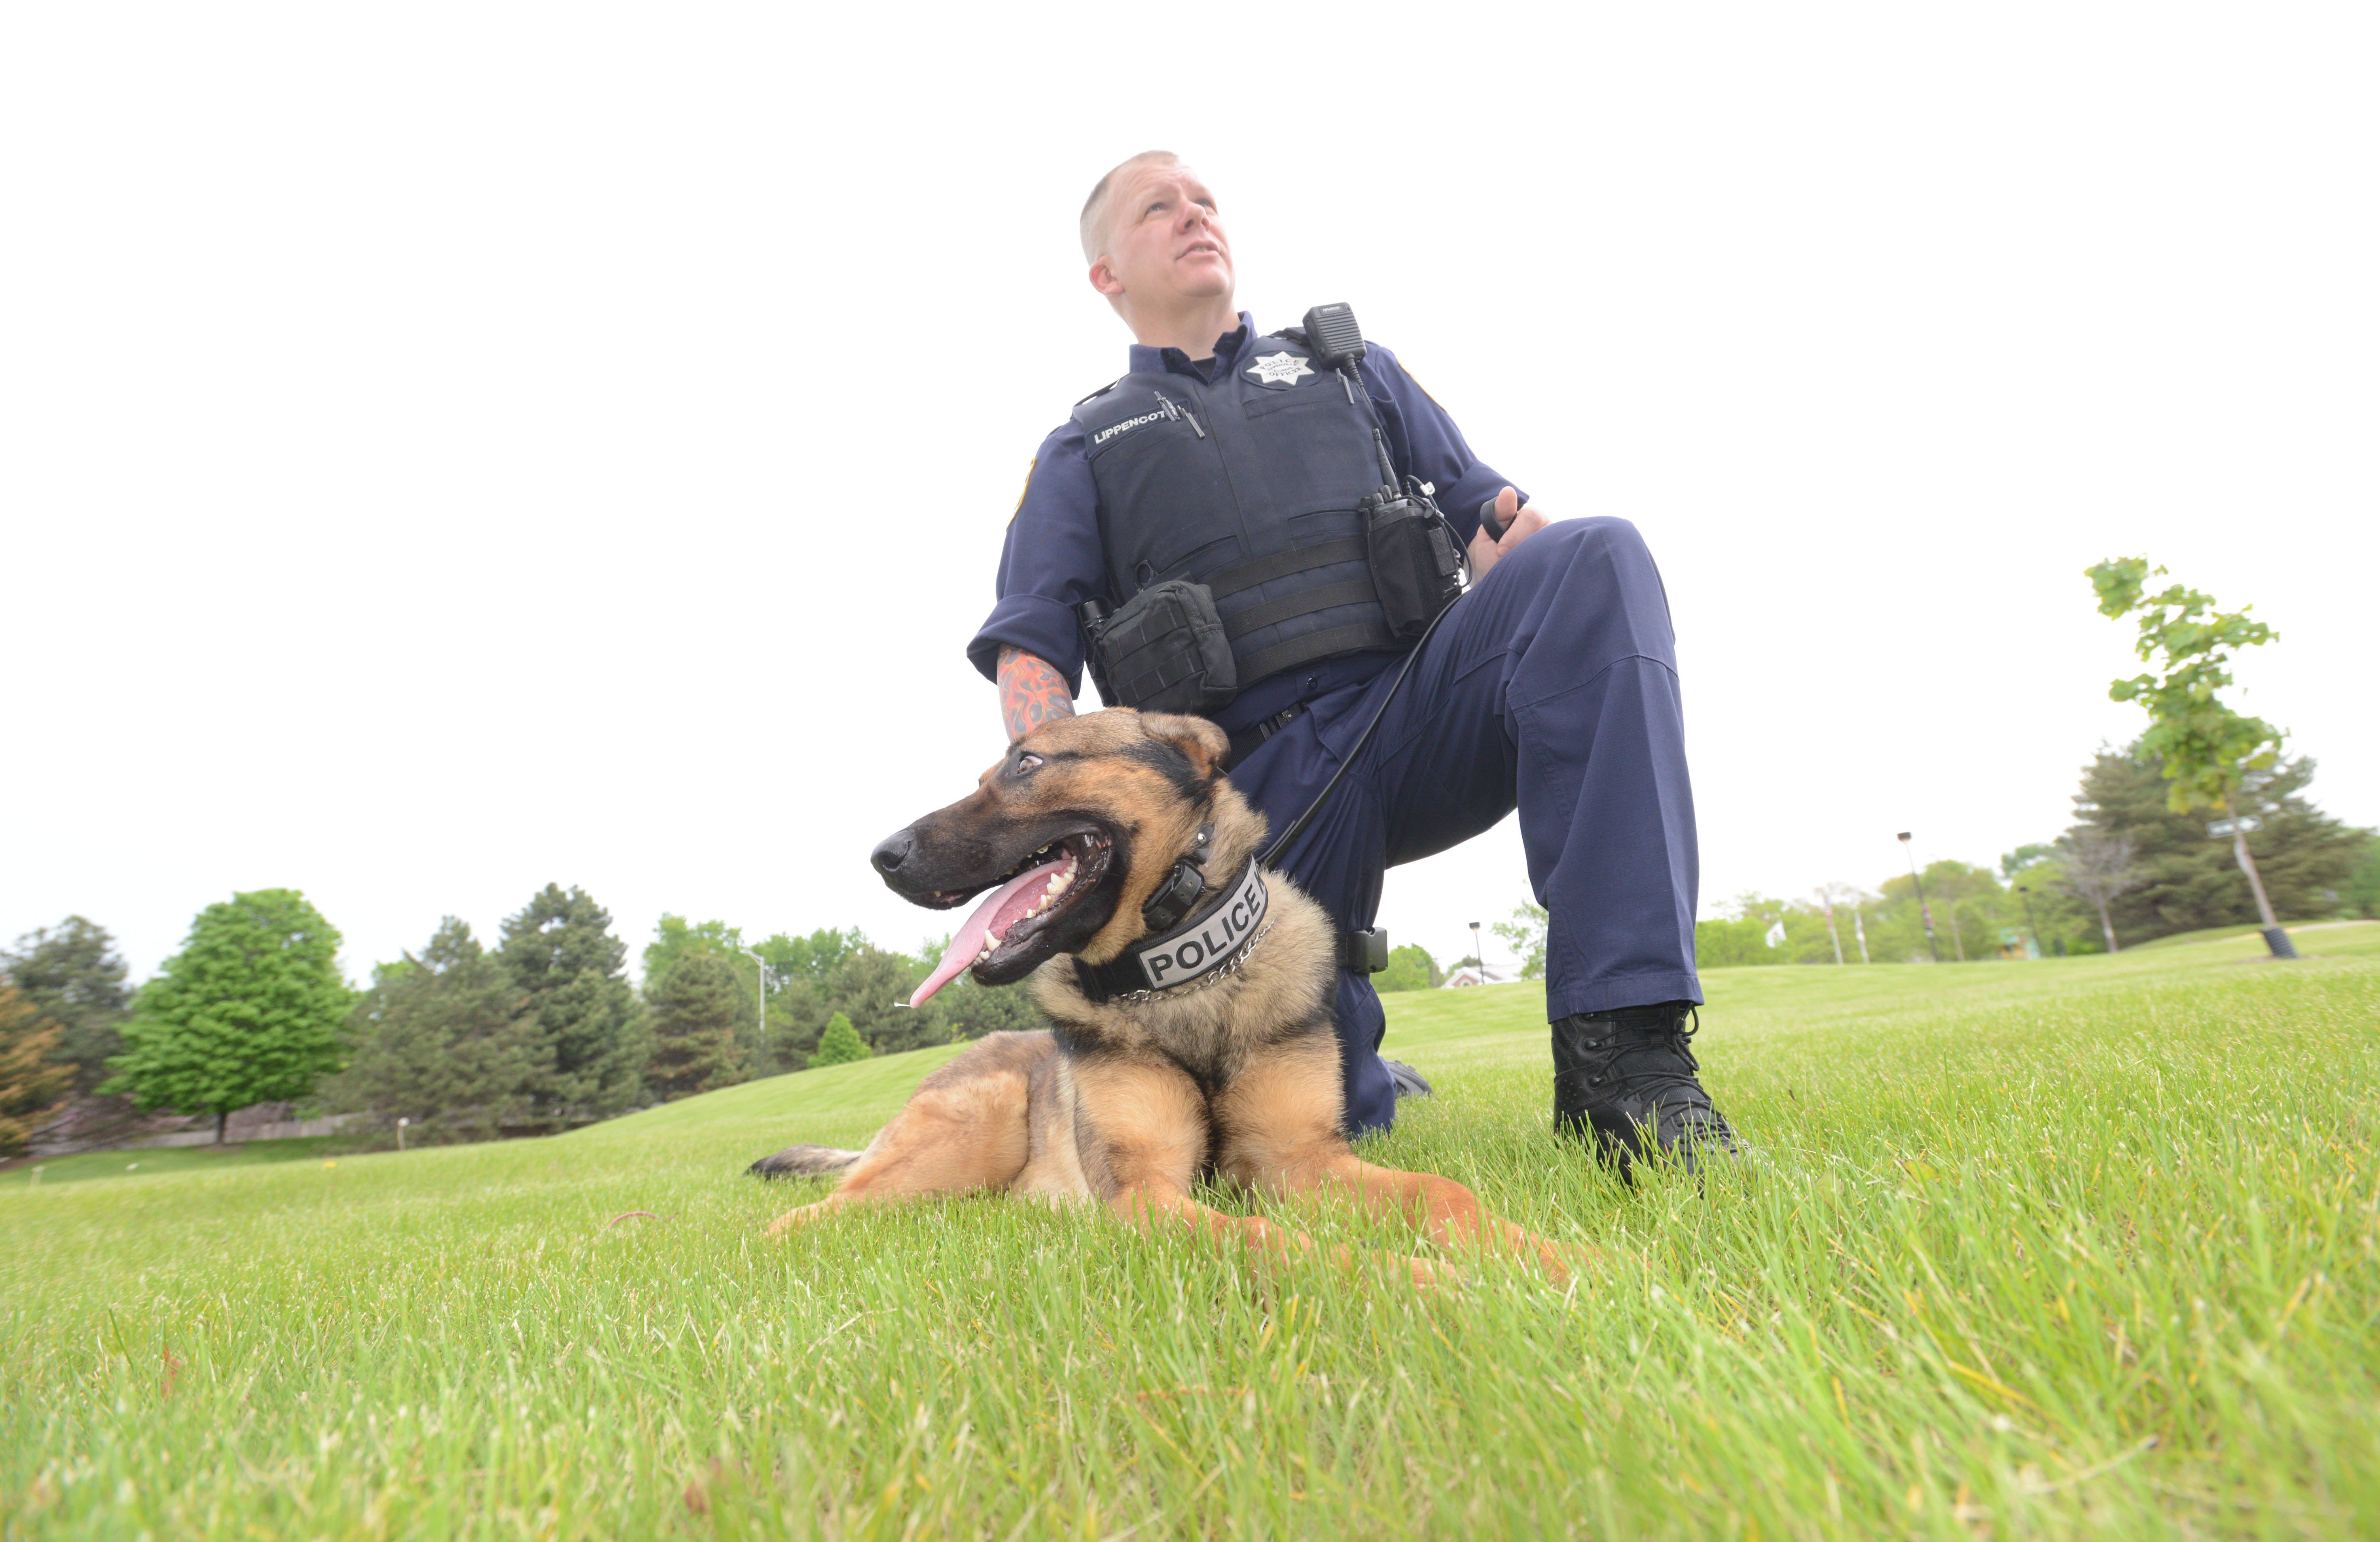 Naperville police officer Grif Lippencott and his partner, Maximus, make up the department's newest K-9 team. They specialize in searching for drugs, following scents to find people and searching areas for evidence.